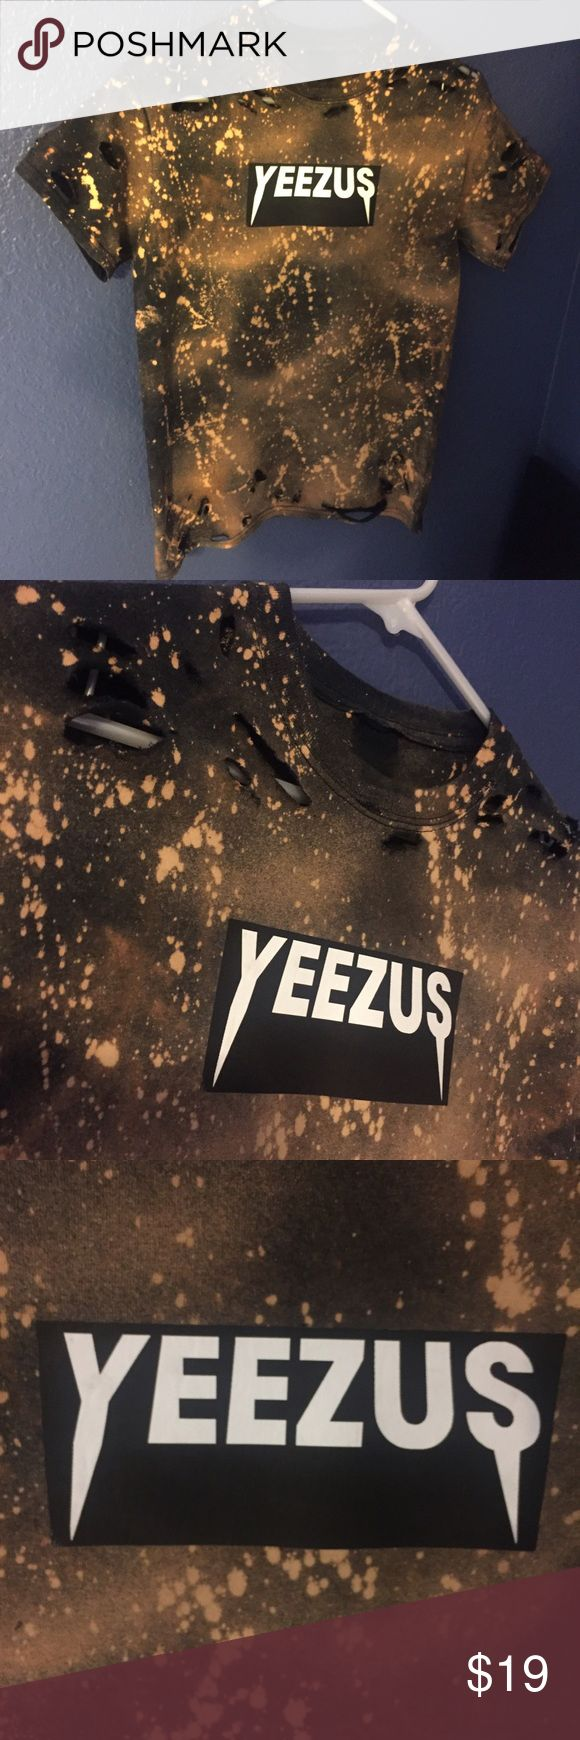 Bleached & Distressed Custom Yeezus Shirt size S Men's S tee, which could fit up to women's L. Distressed at top and bottom of front, along with the sleeves. Can be washed in washer with cold water or hand washed, but must be air dryed!! Never been worn. CHEAPER ON Ⓜ️!!! Ships in 1-3 days. No trades. Thank you! Tops Tees - Short Sleeve